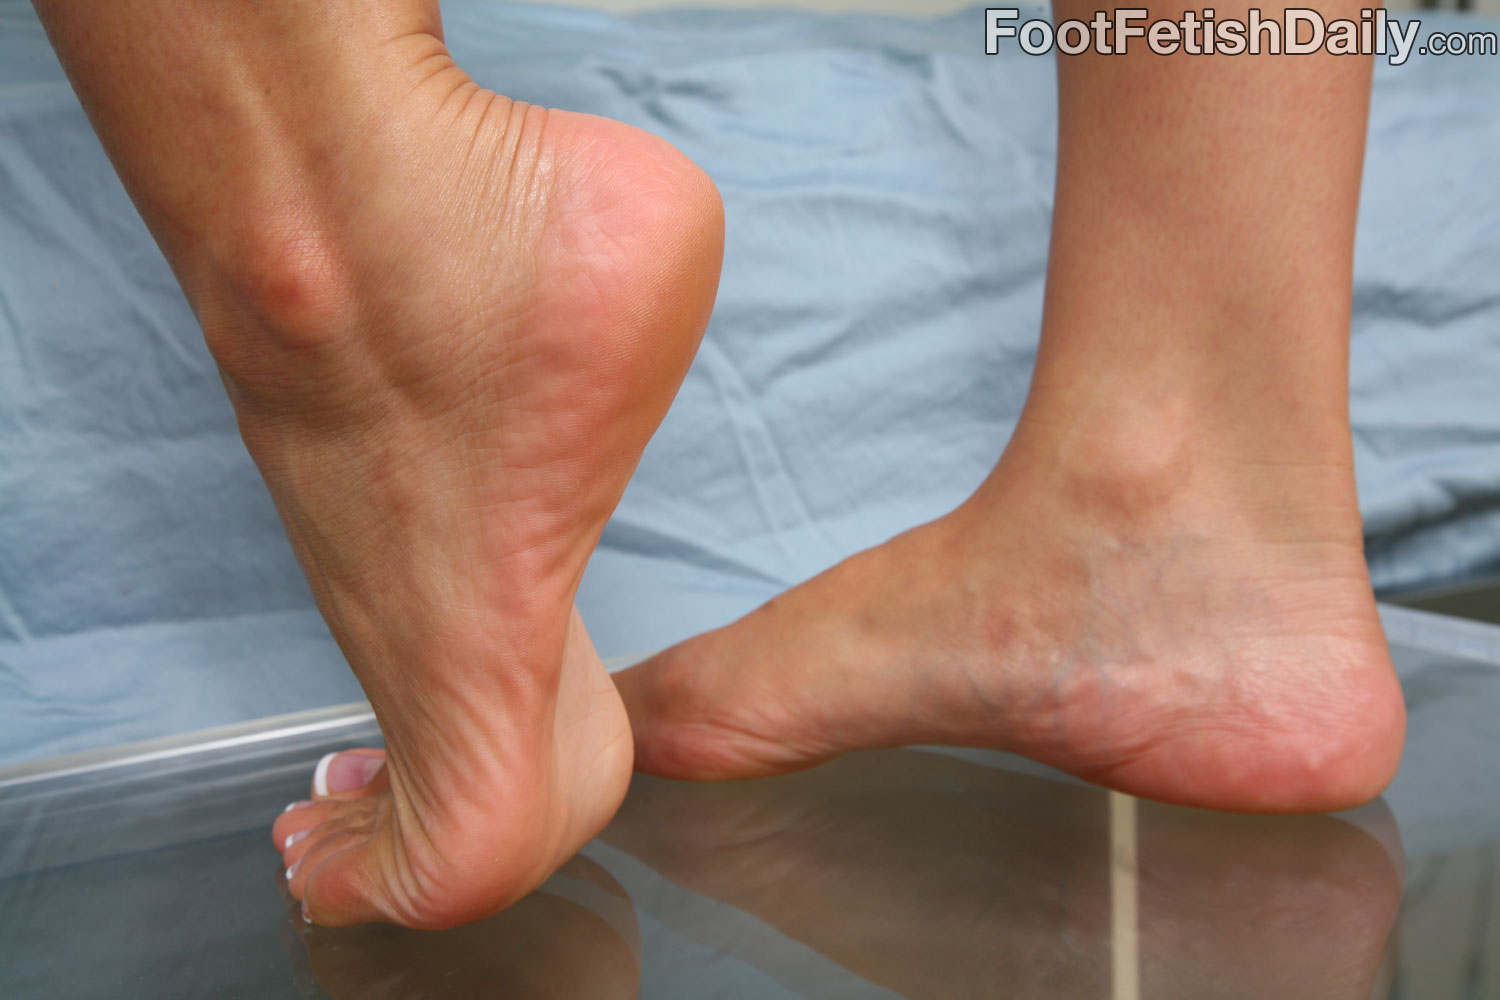 Suggest Foot fetish daily alexis breeze with you